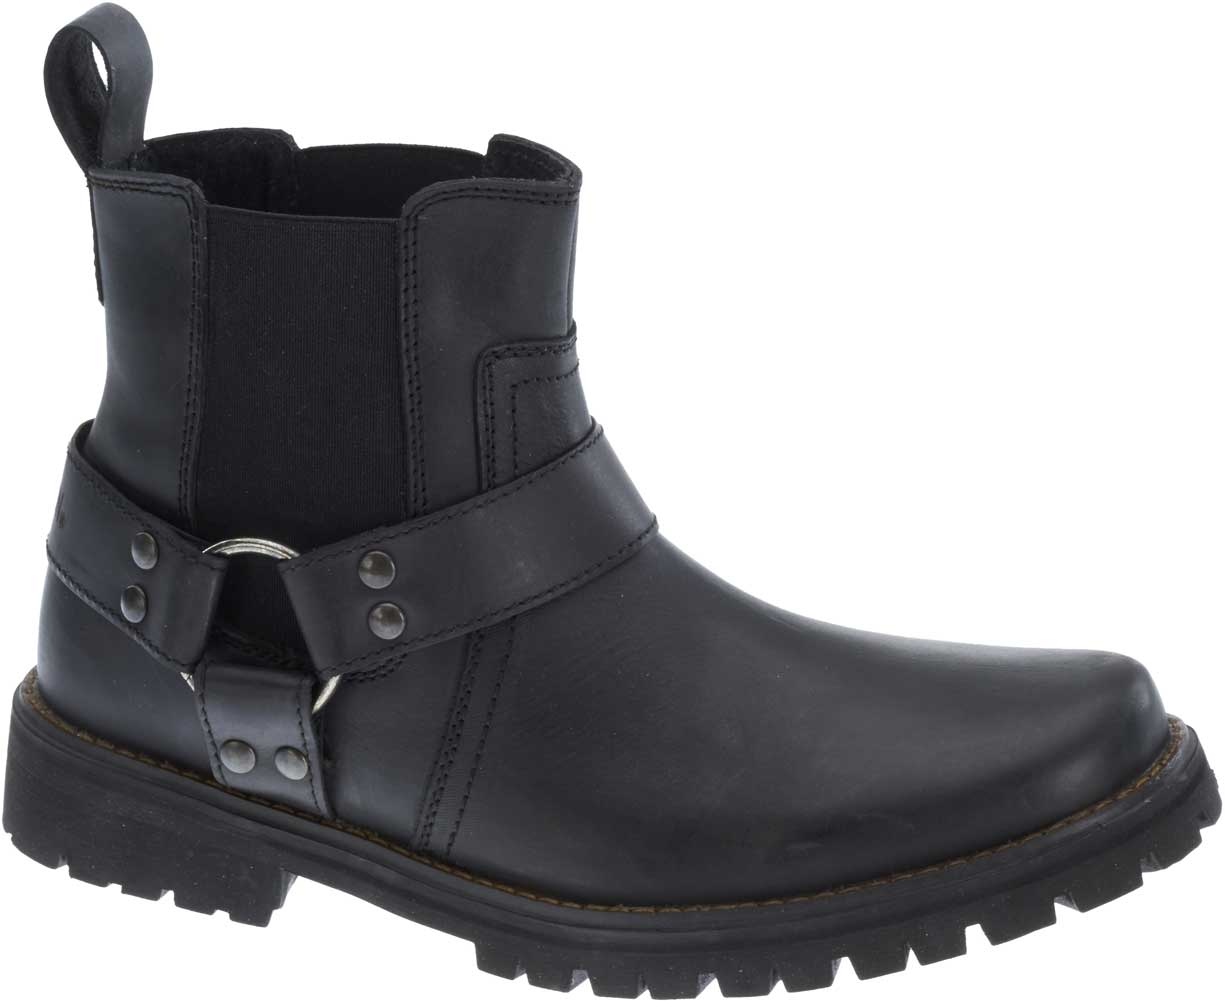 Harley-Davidson Men's Duran Ankle-High Motorcycle Boots ...